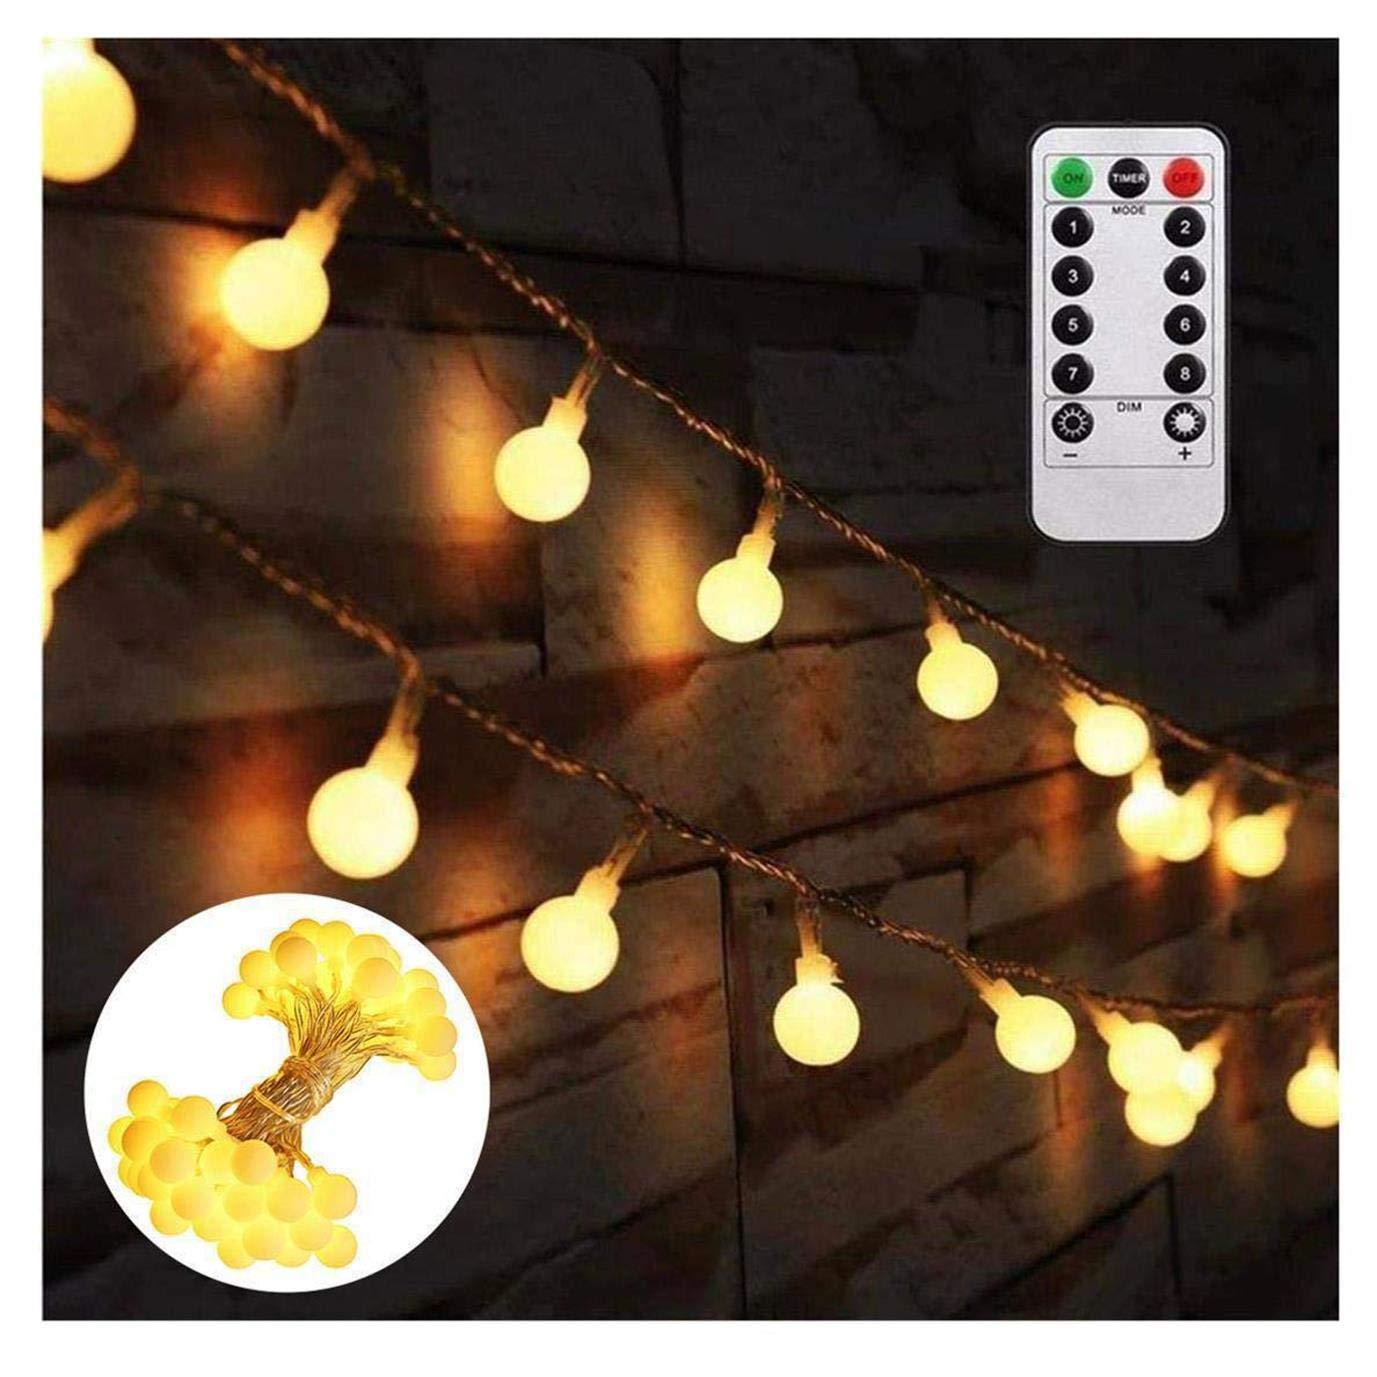 globe string lights battery powered bedroom 164 feet fairy starry led light with remote 8 lighting modes waterproof dimmable for tapestry indoor